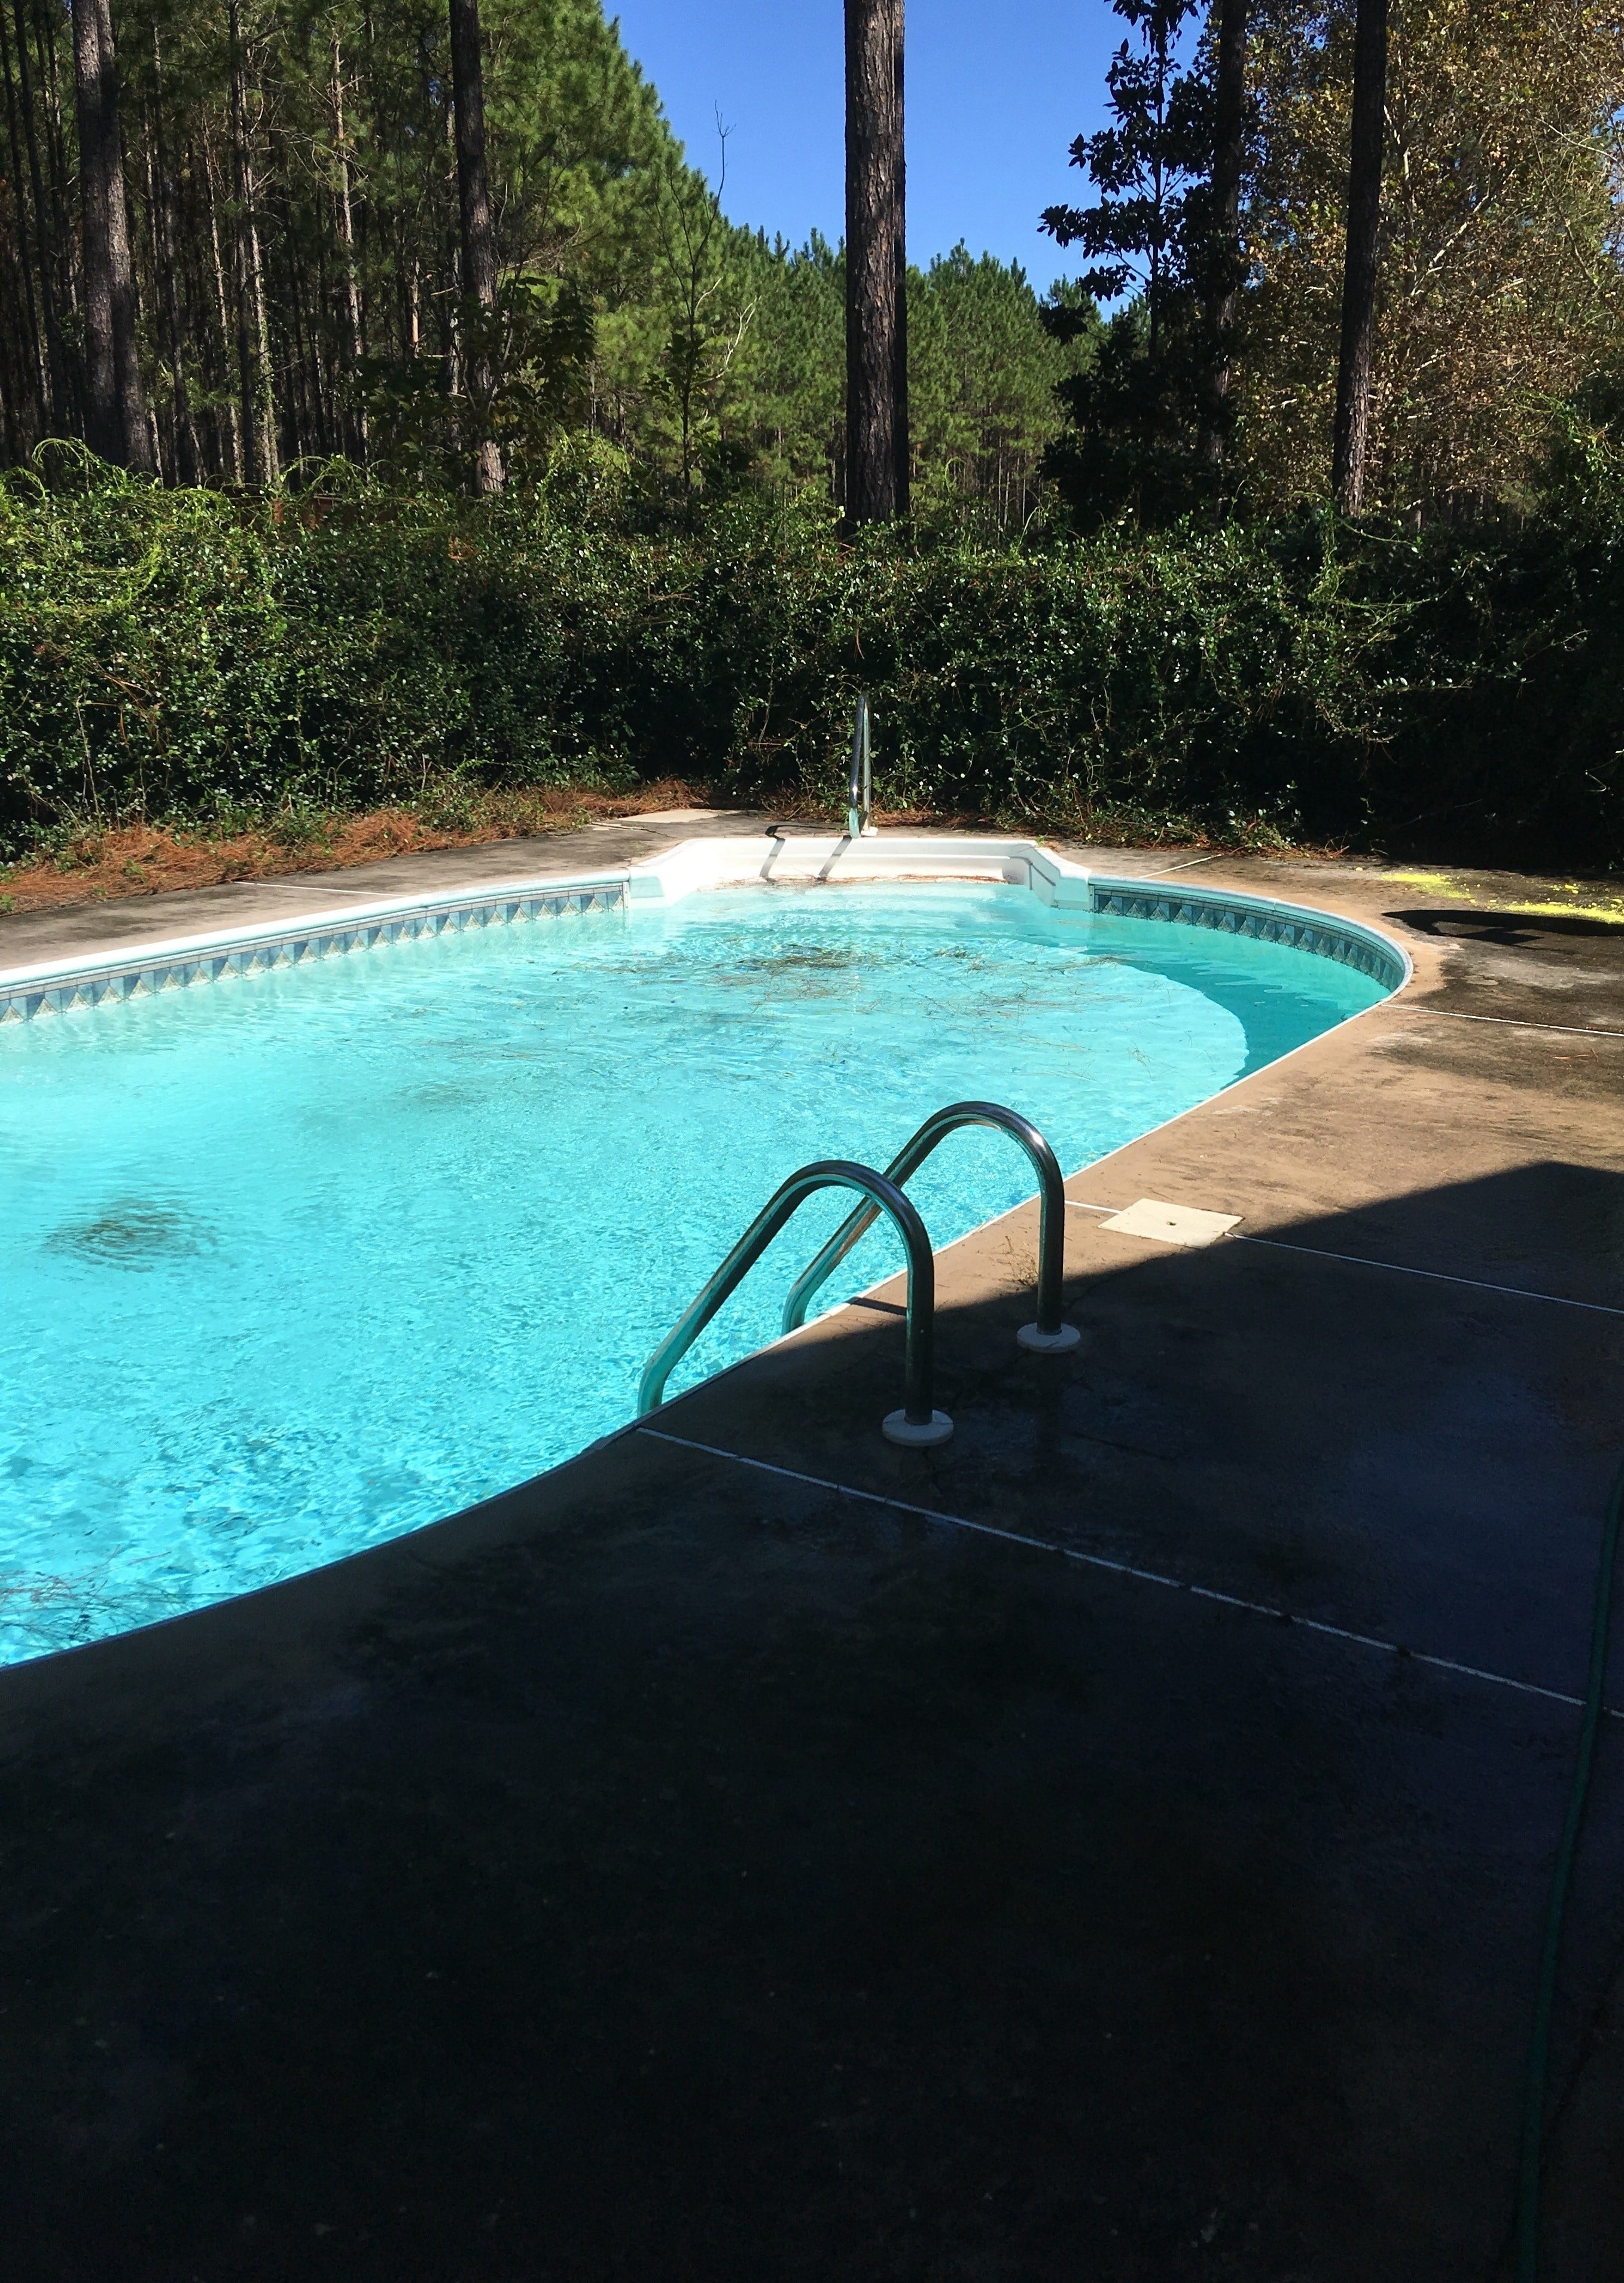 Pool Concrete Paint Before